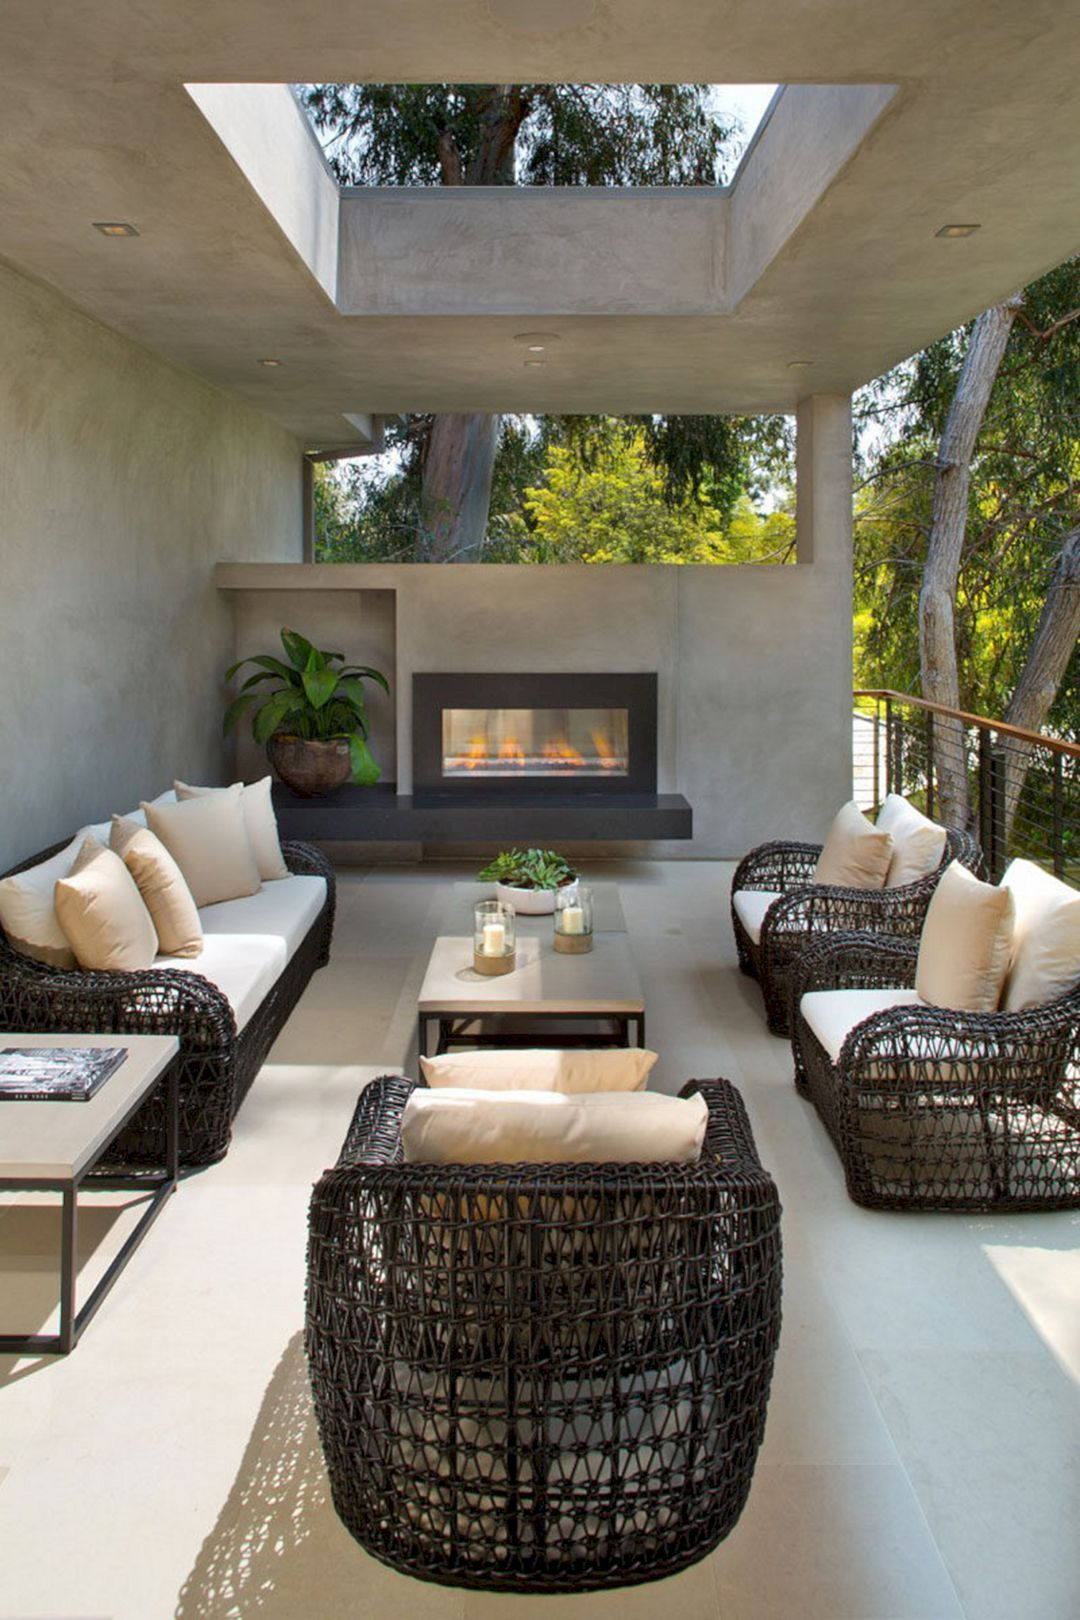 Majestic 40 Best Outdoor Living Spaces As A Resting Place With Your Family Https Decoredo Com 14190 40 Best Outdoor Outdoor Living Space Outdoor Rooms Home Family home with outdoor living room